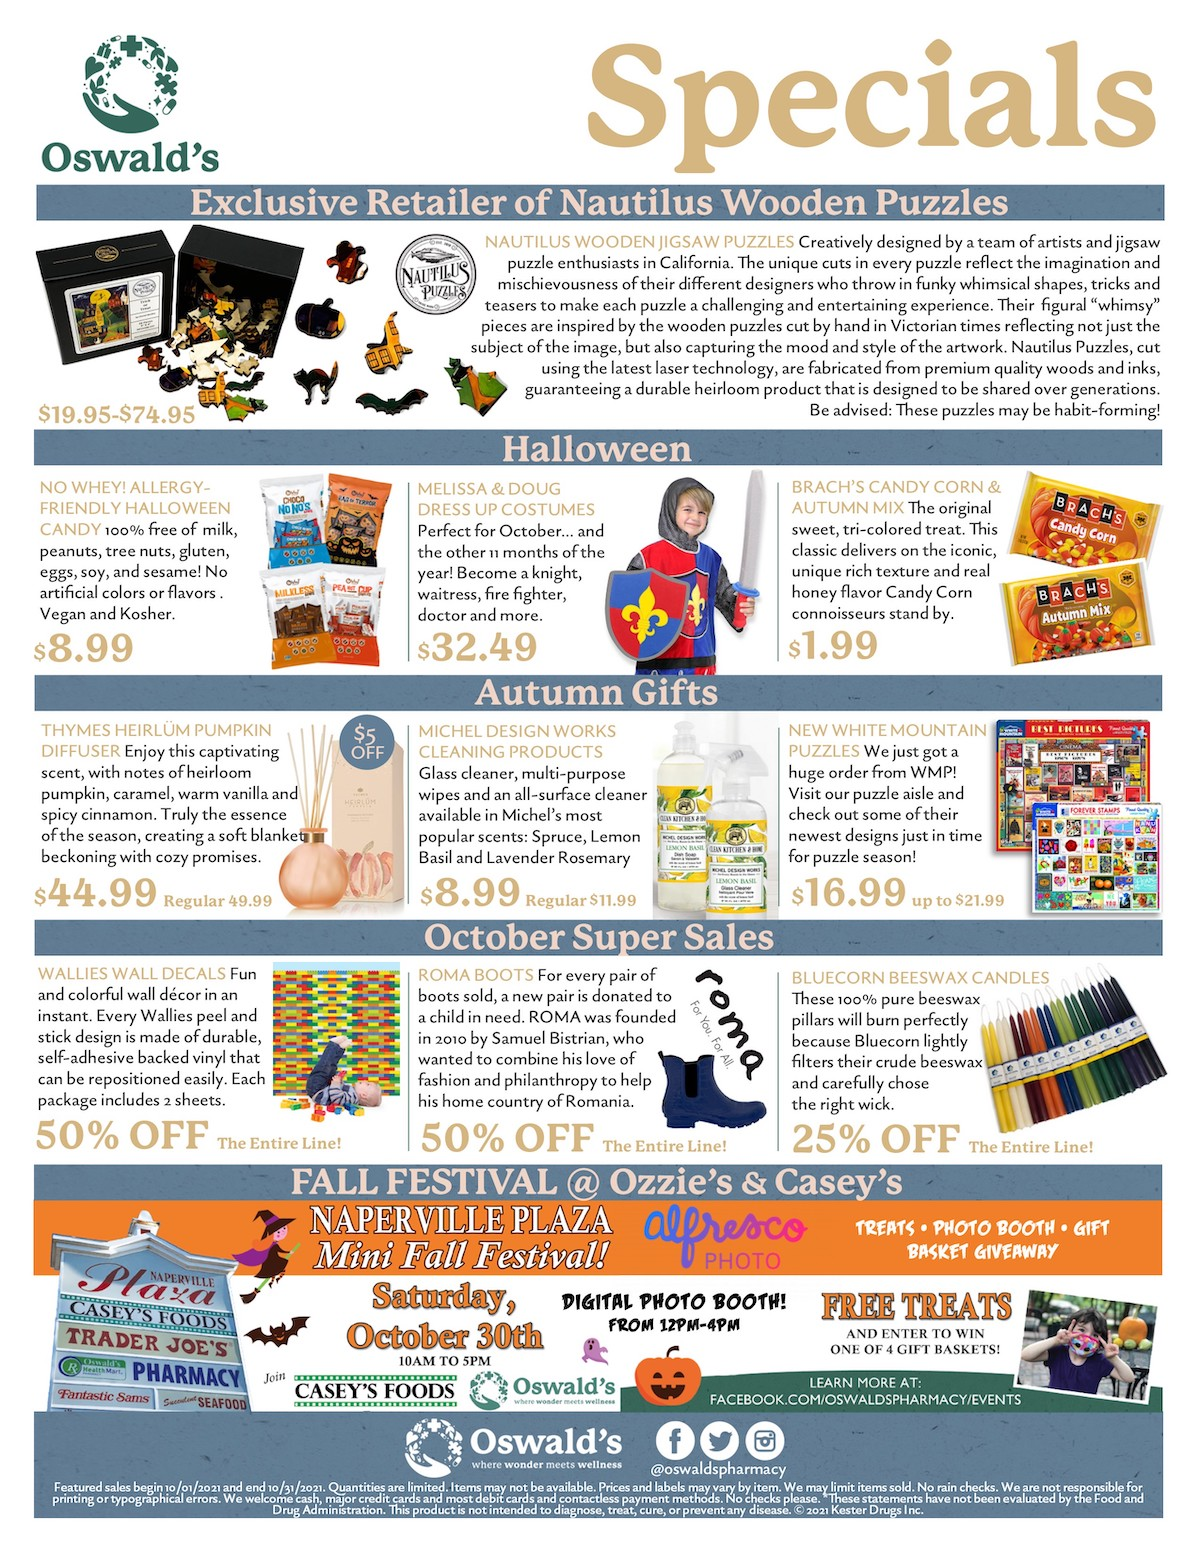 October 2021 Sales Flyer. Monthly promotions for Oswald's Pharmacy. Large image size.